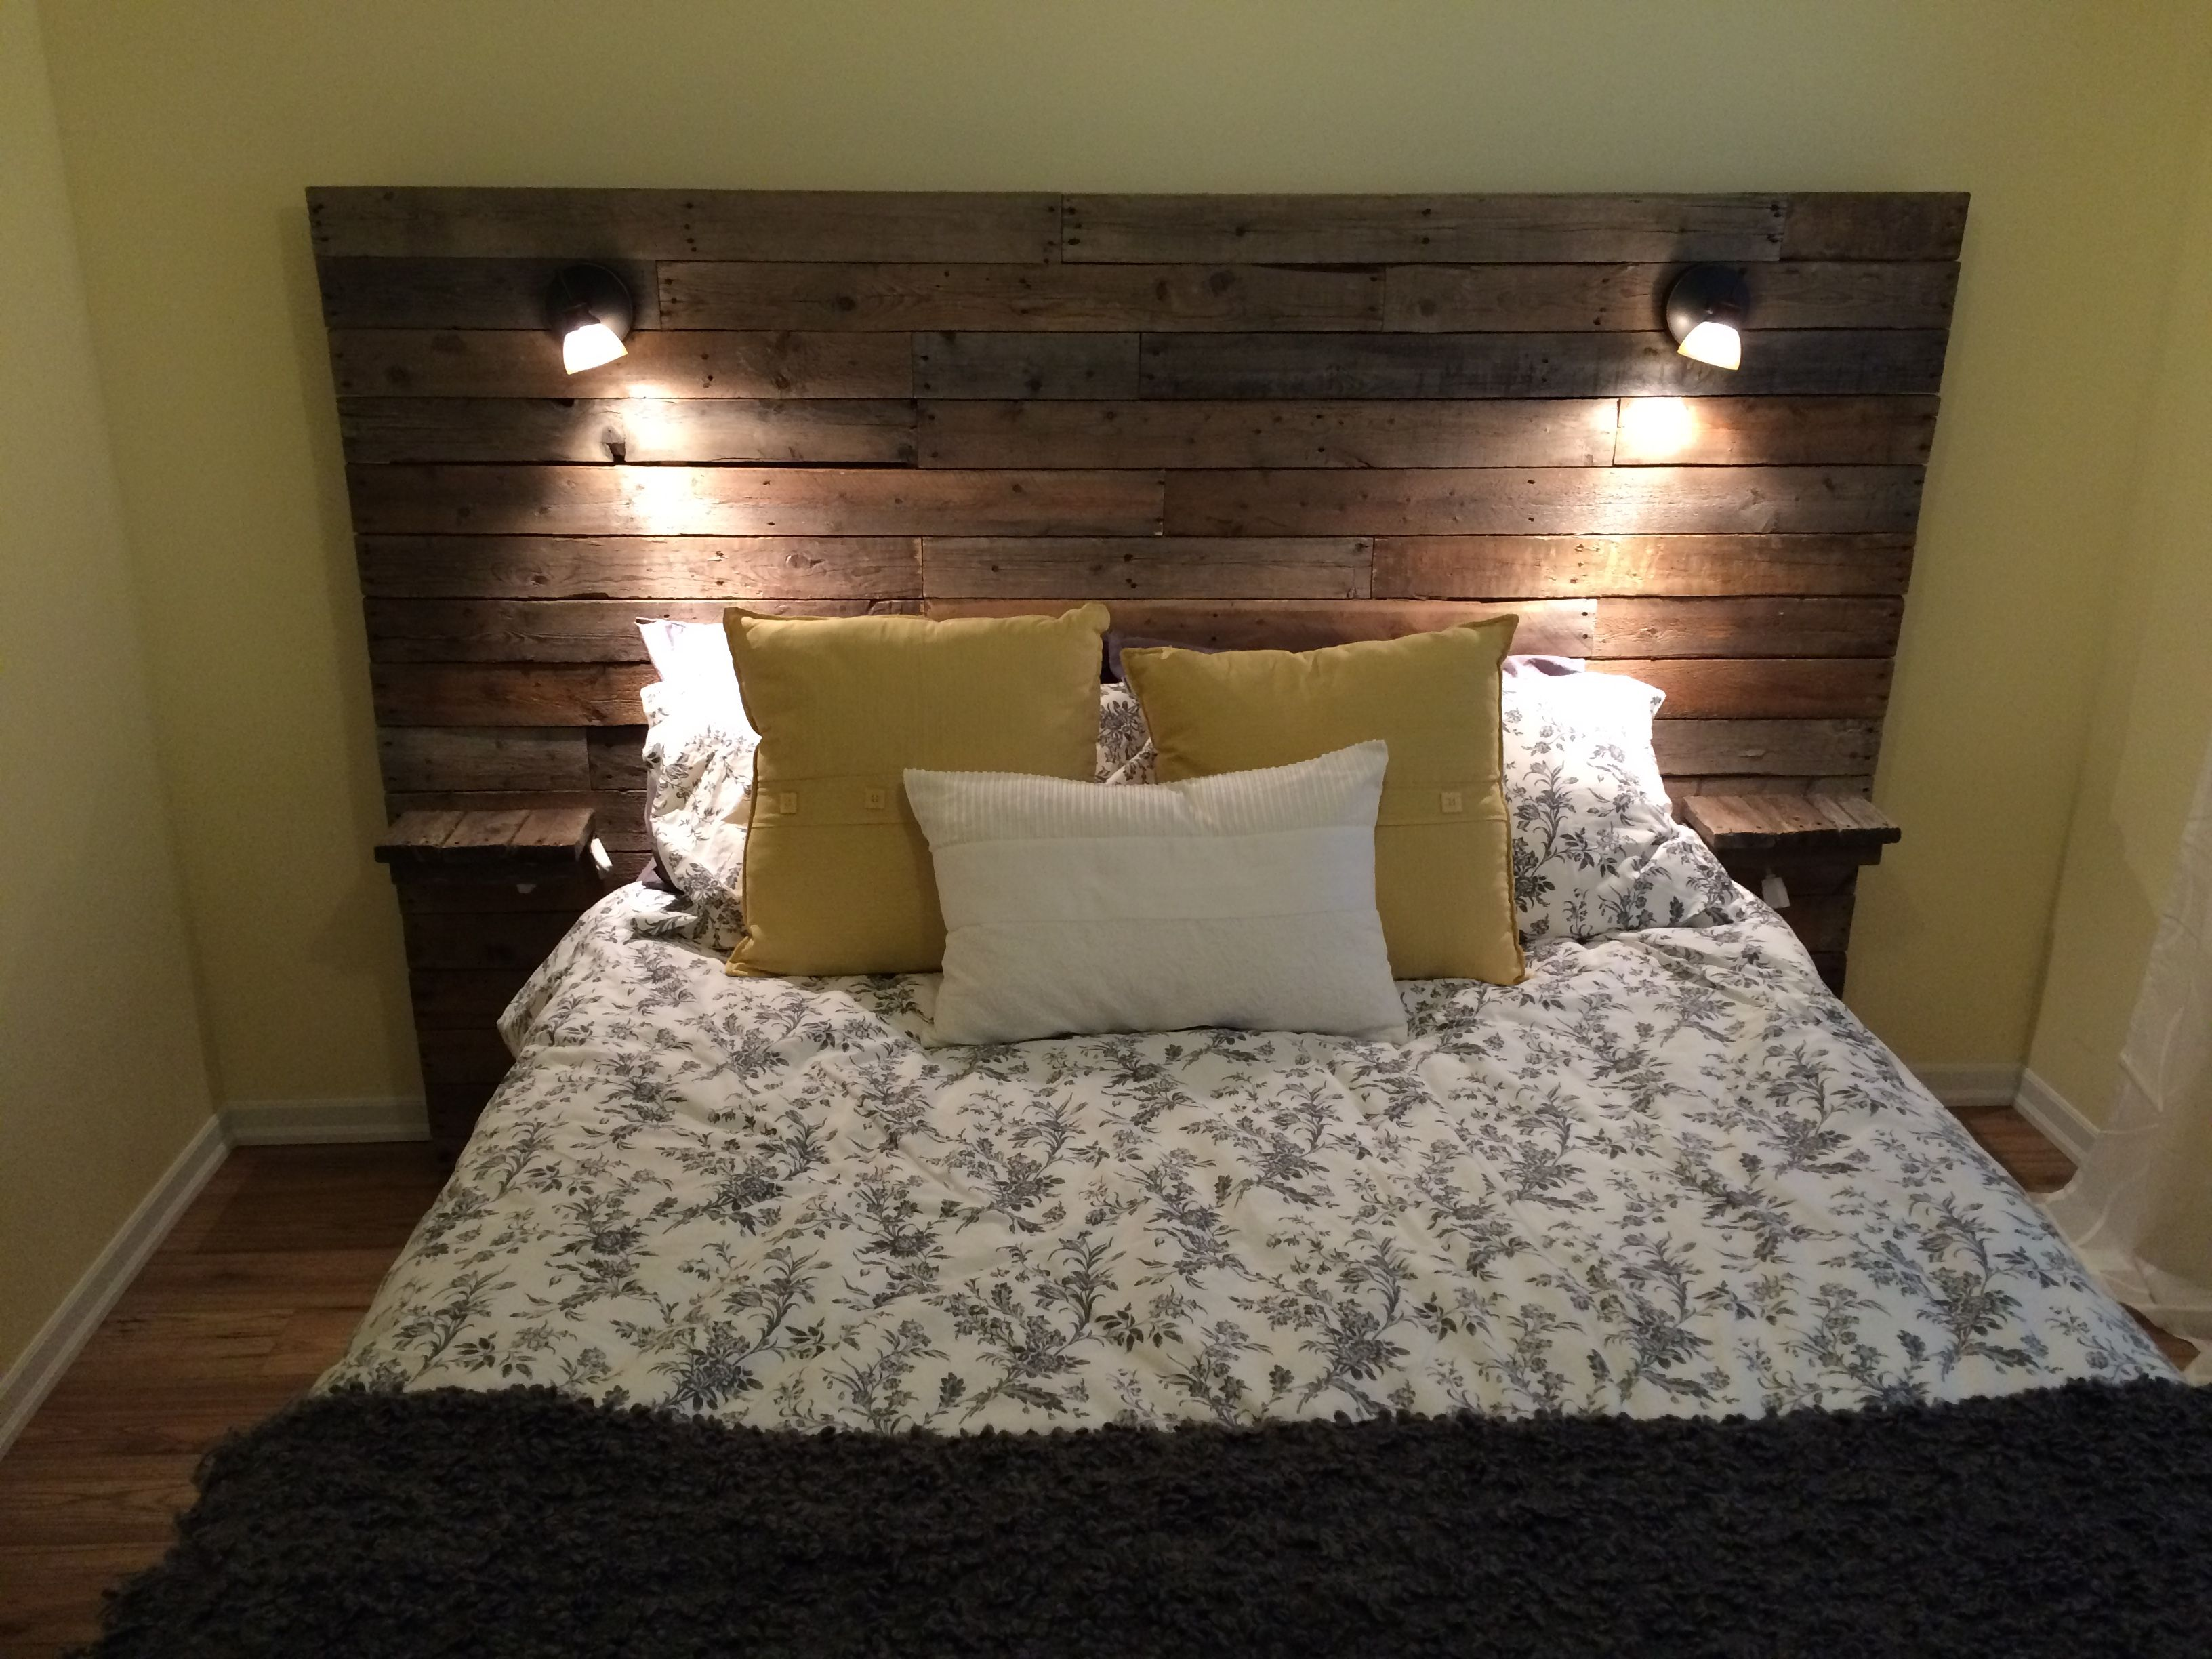 Headboard Alternative Ideas Best 25 Headboard Shelves Ideas On Pinterest Headboard Ideas